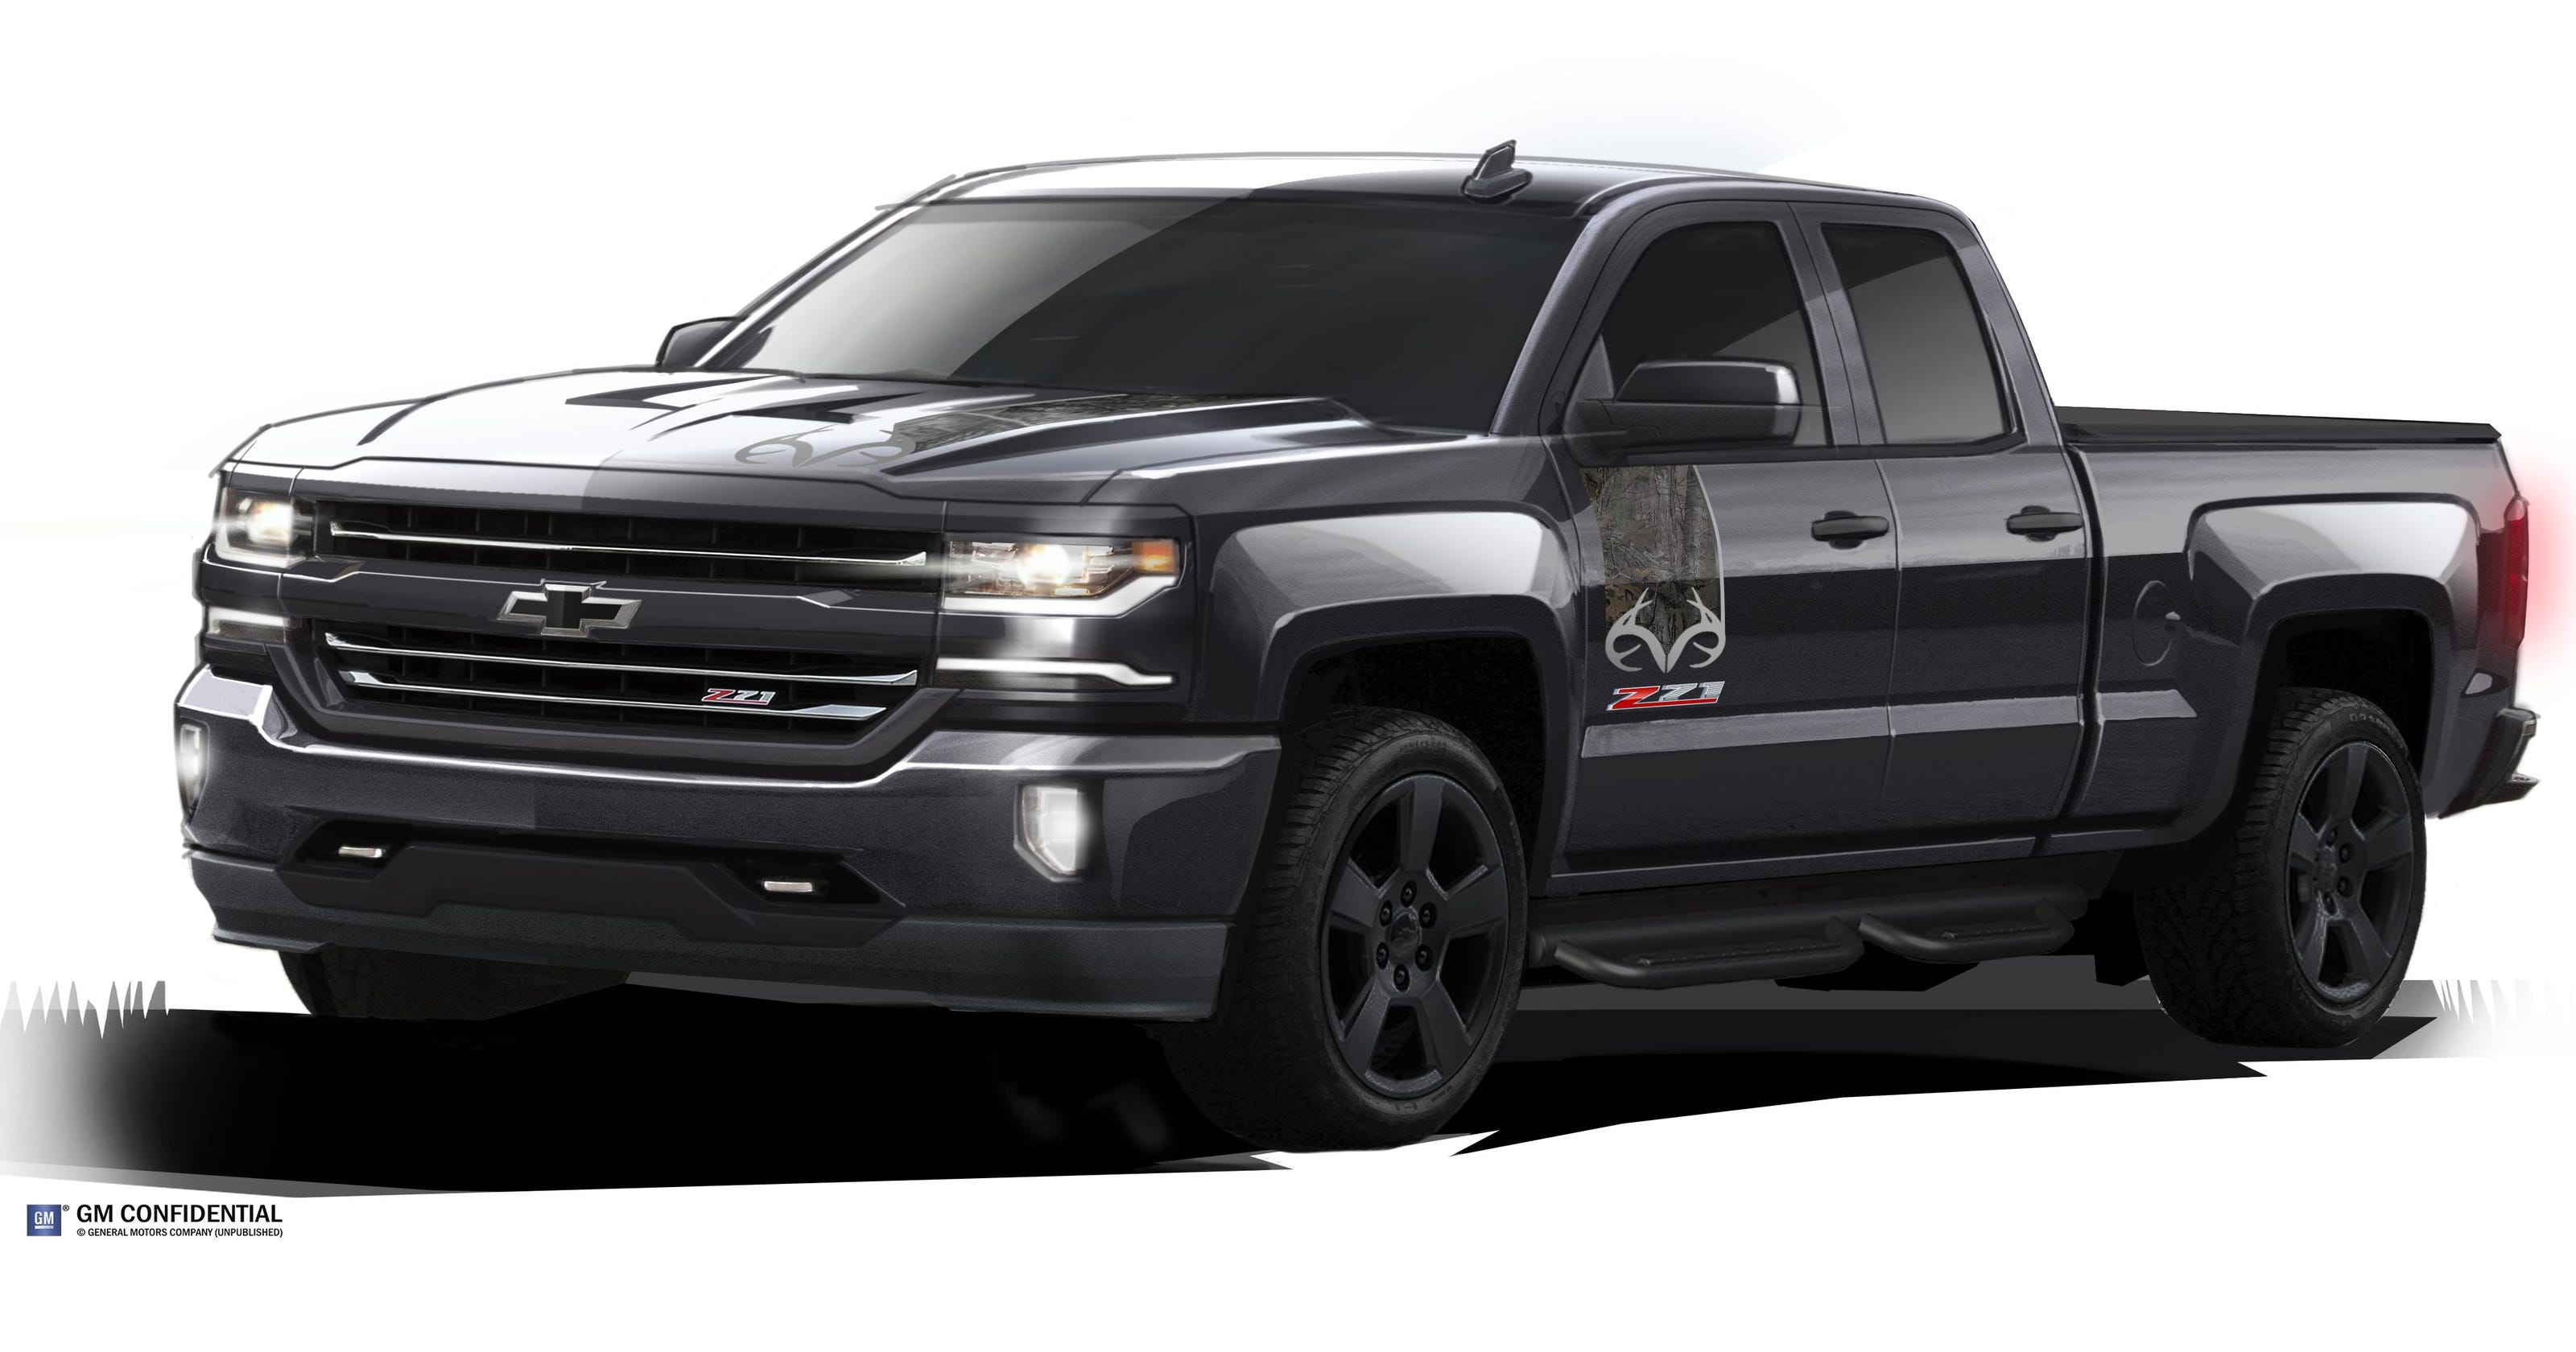 Silverado Special Edition >> Chevy To Launch Silverado Realtree Special Edition Truck